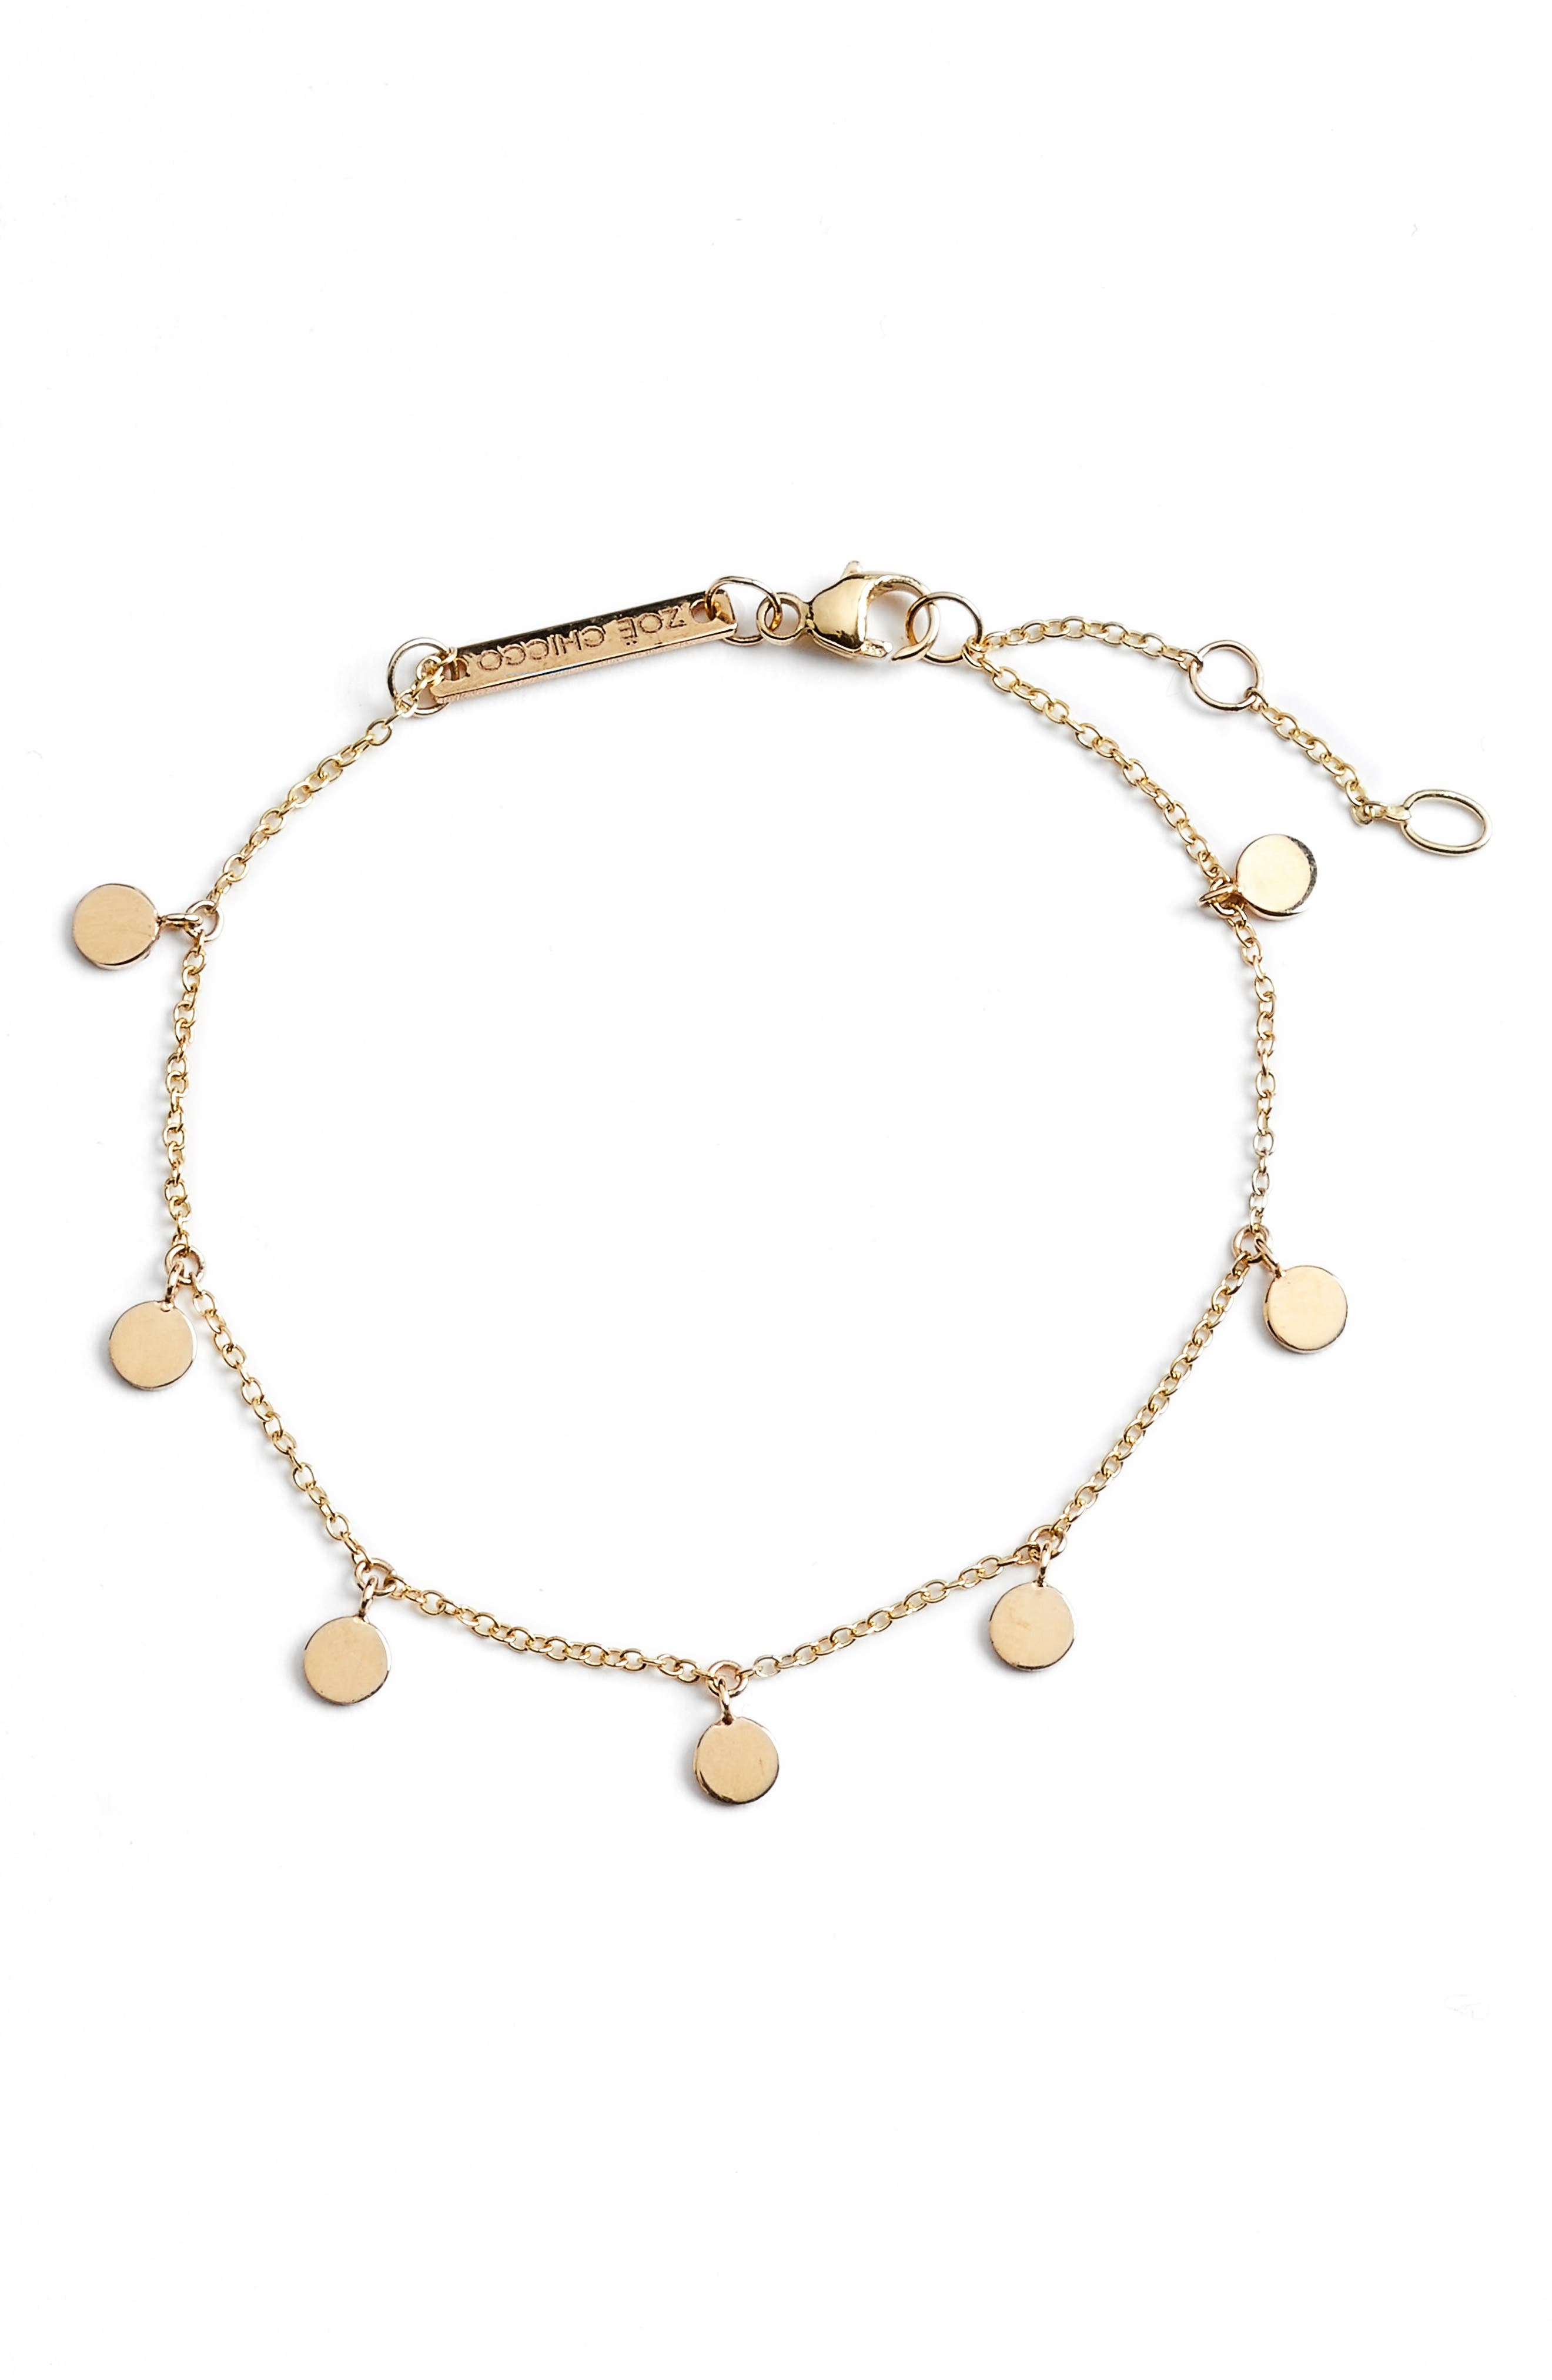 Itty Bitty Round Disc Charm Bracelet,                             Main thumbnail 1, color,                             Yellow Gold